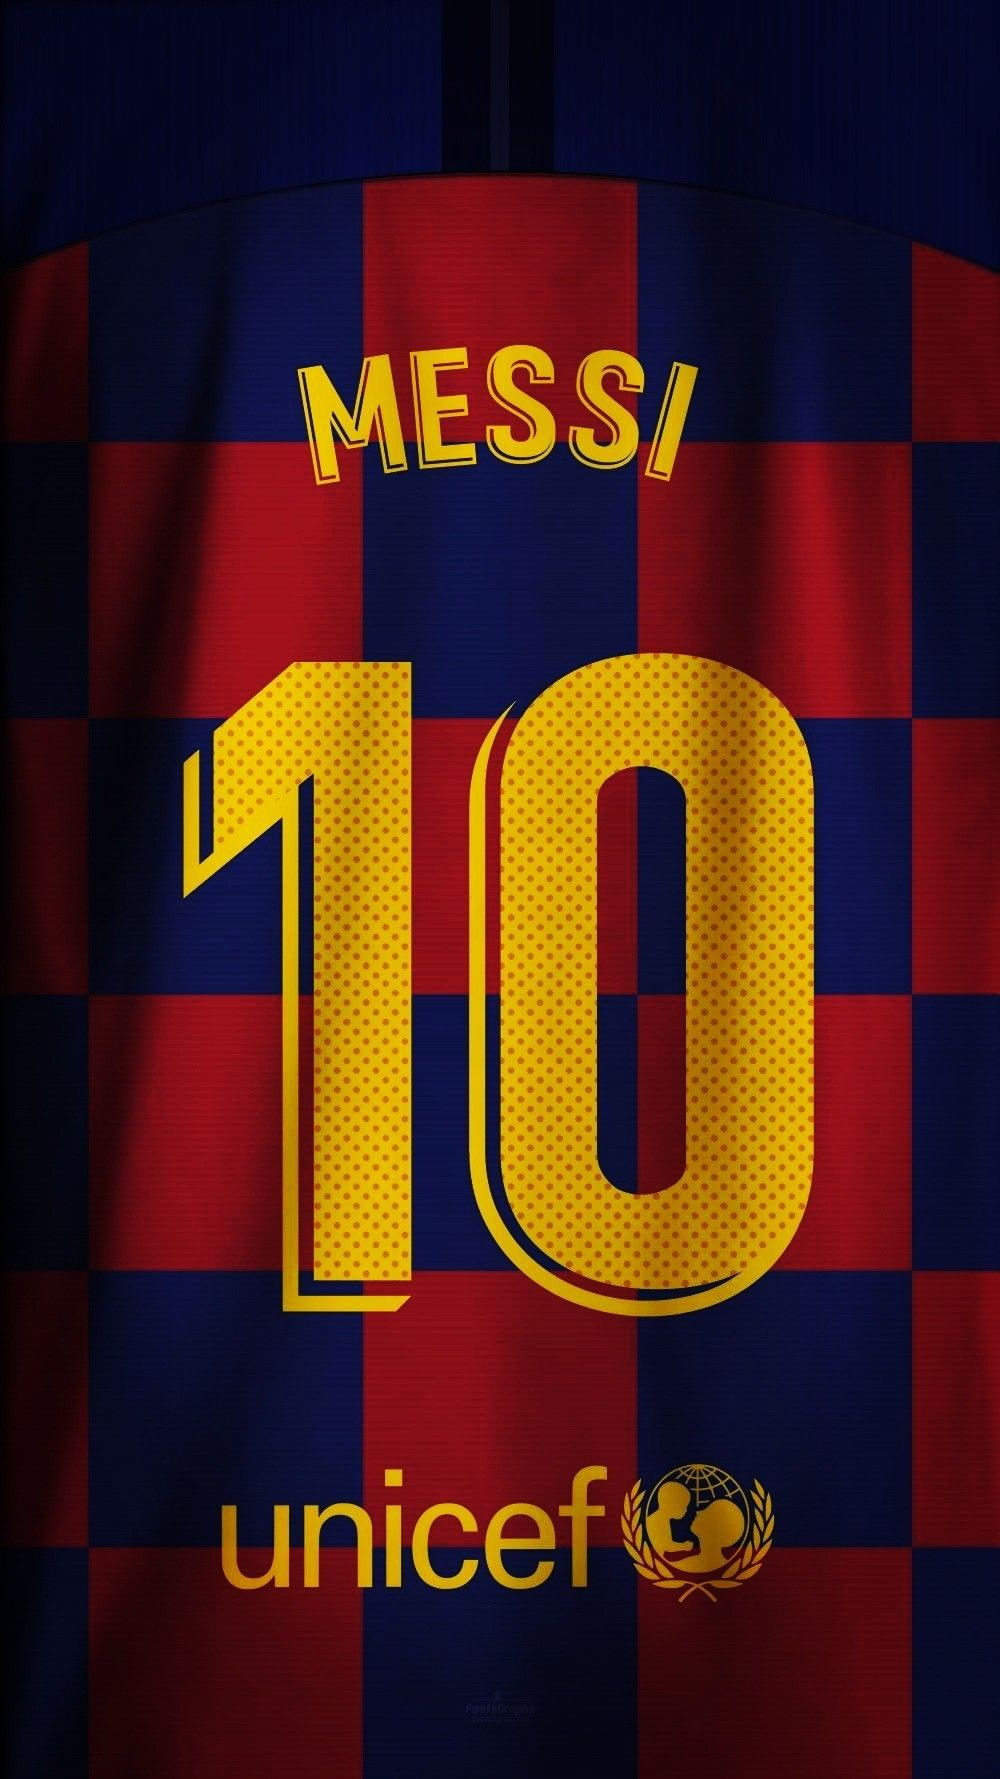 Pin By John Fyucha On Kjhh Lionel Messi Wallpapers Messi Lionel Messi Barcelona